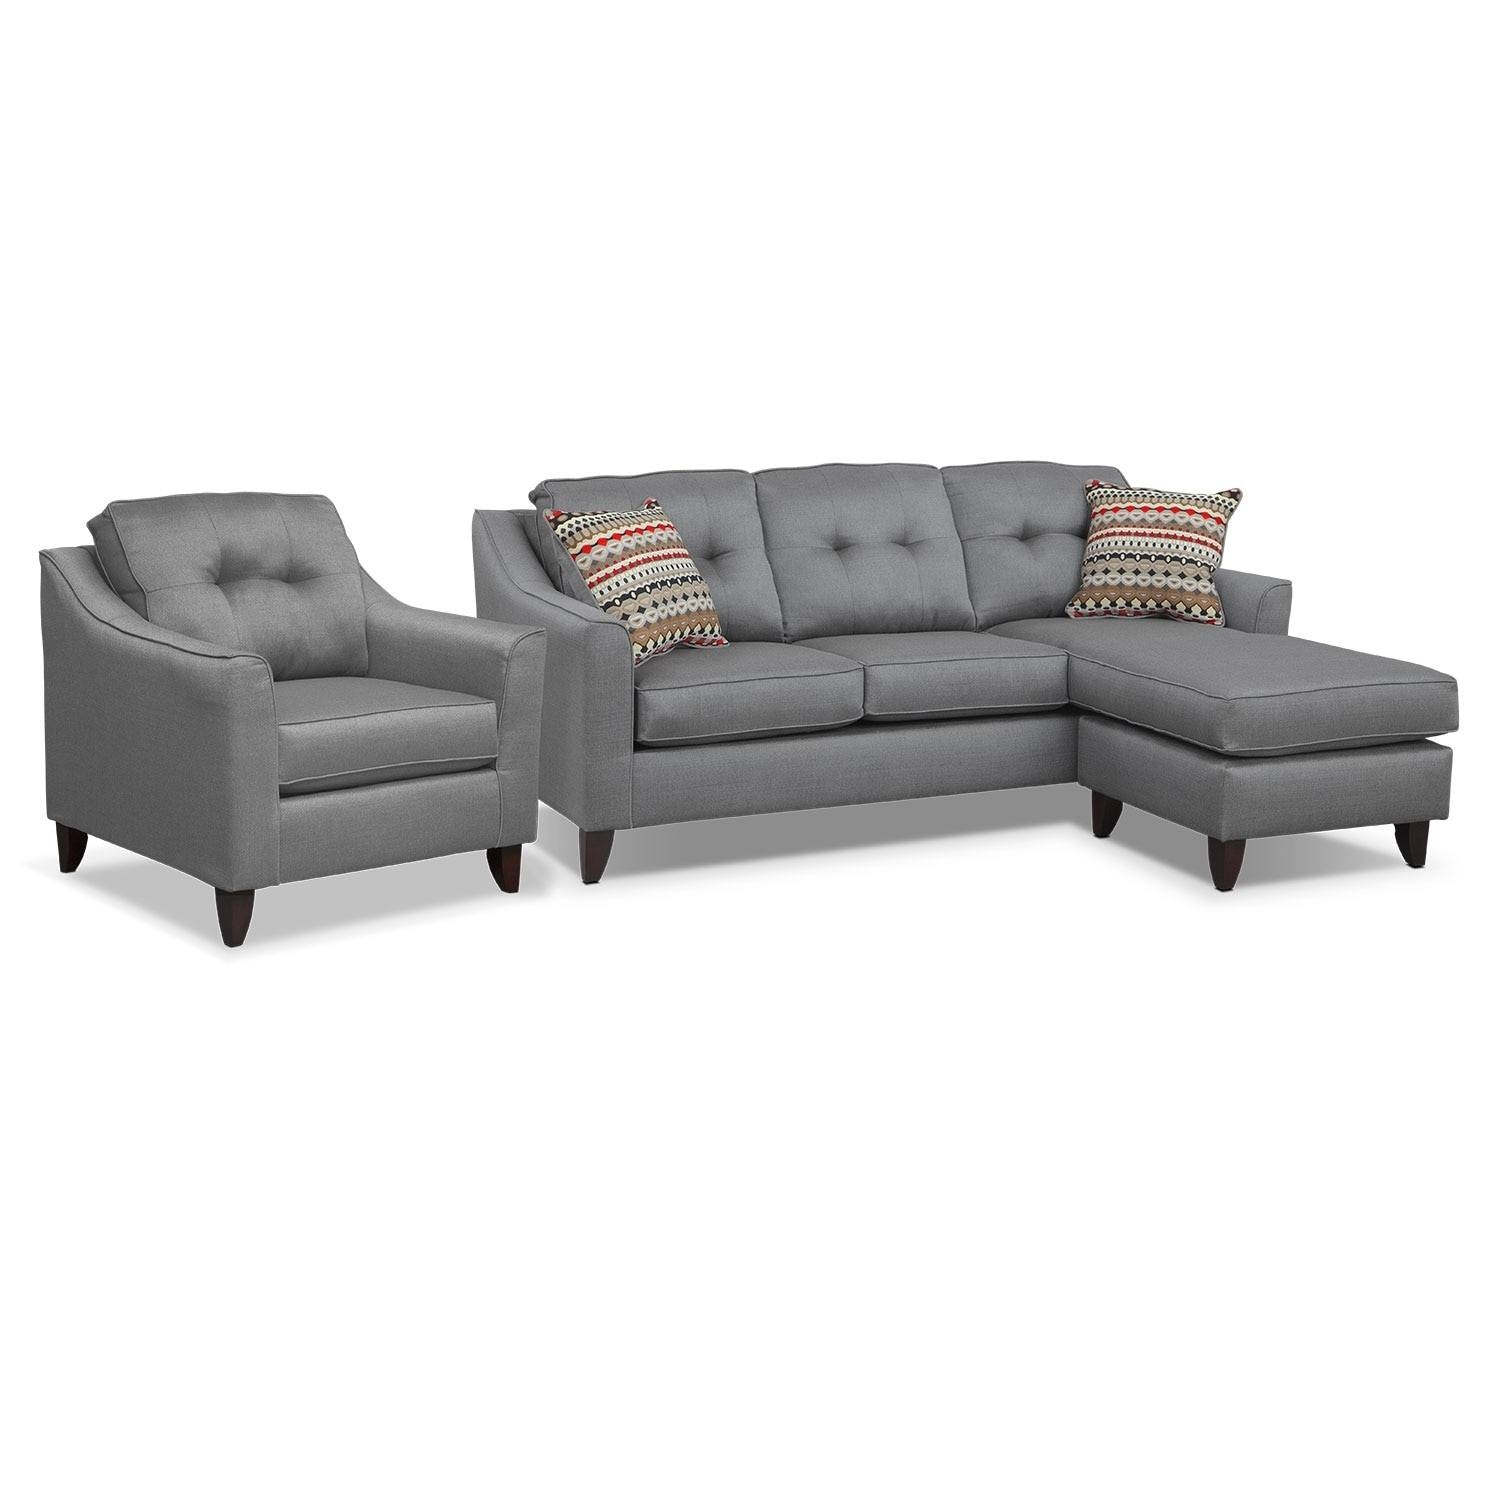 Marco Chaise Sofa And Chair Set – Gray | American Signature Furniture Regarding Sofa And Chair Set (View 19 of 30)